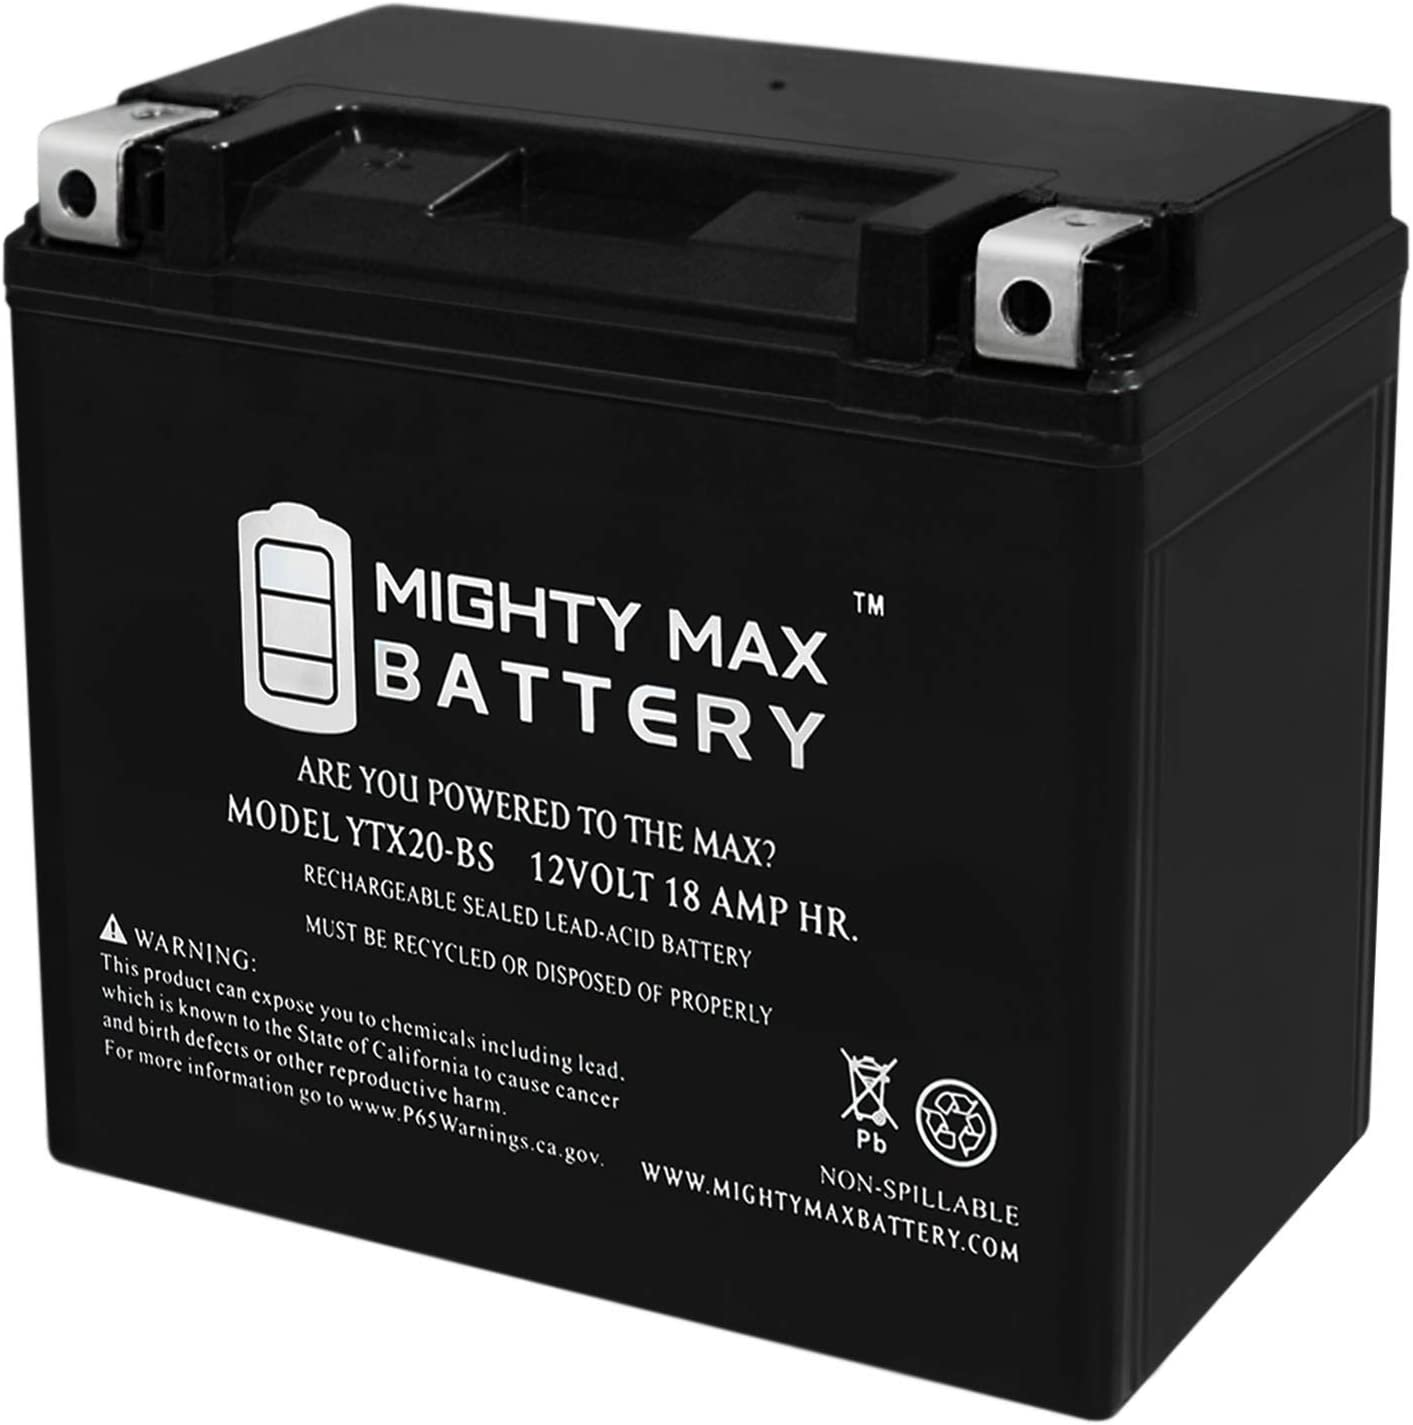 Mighty Max Battery 12V 18Ah Battery for Arctic Cat Sabercat 500 2004-2006 Brand Product